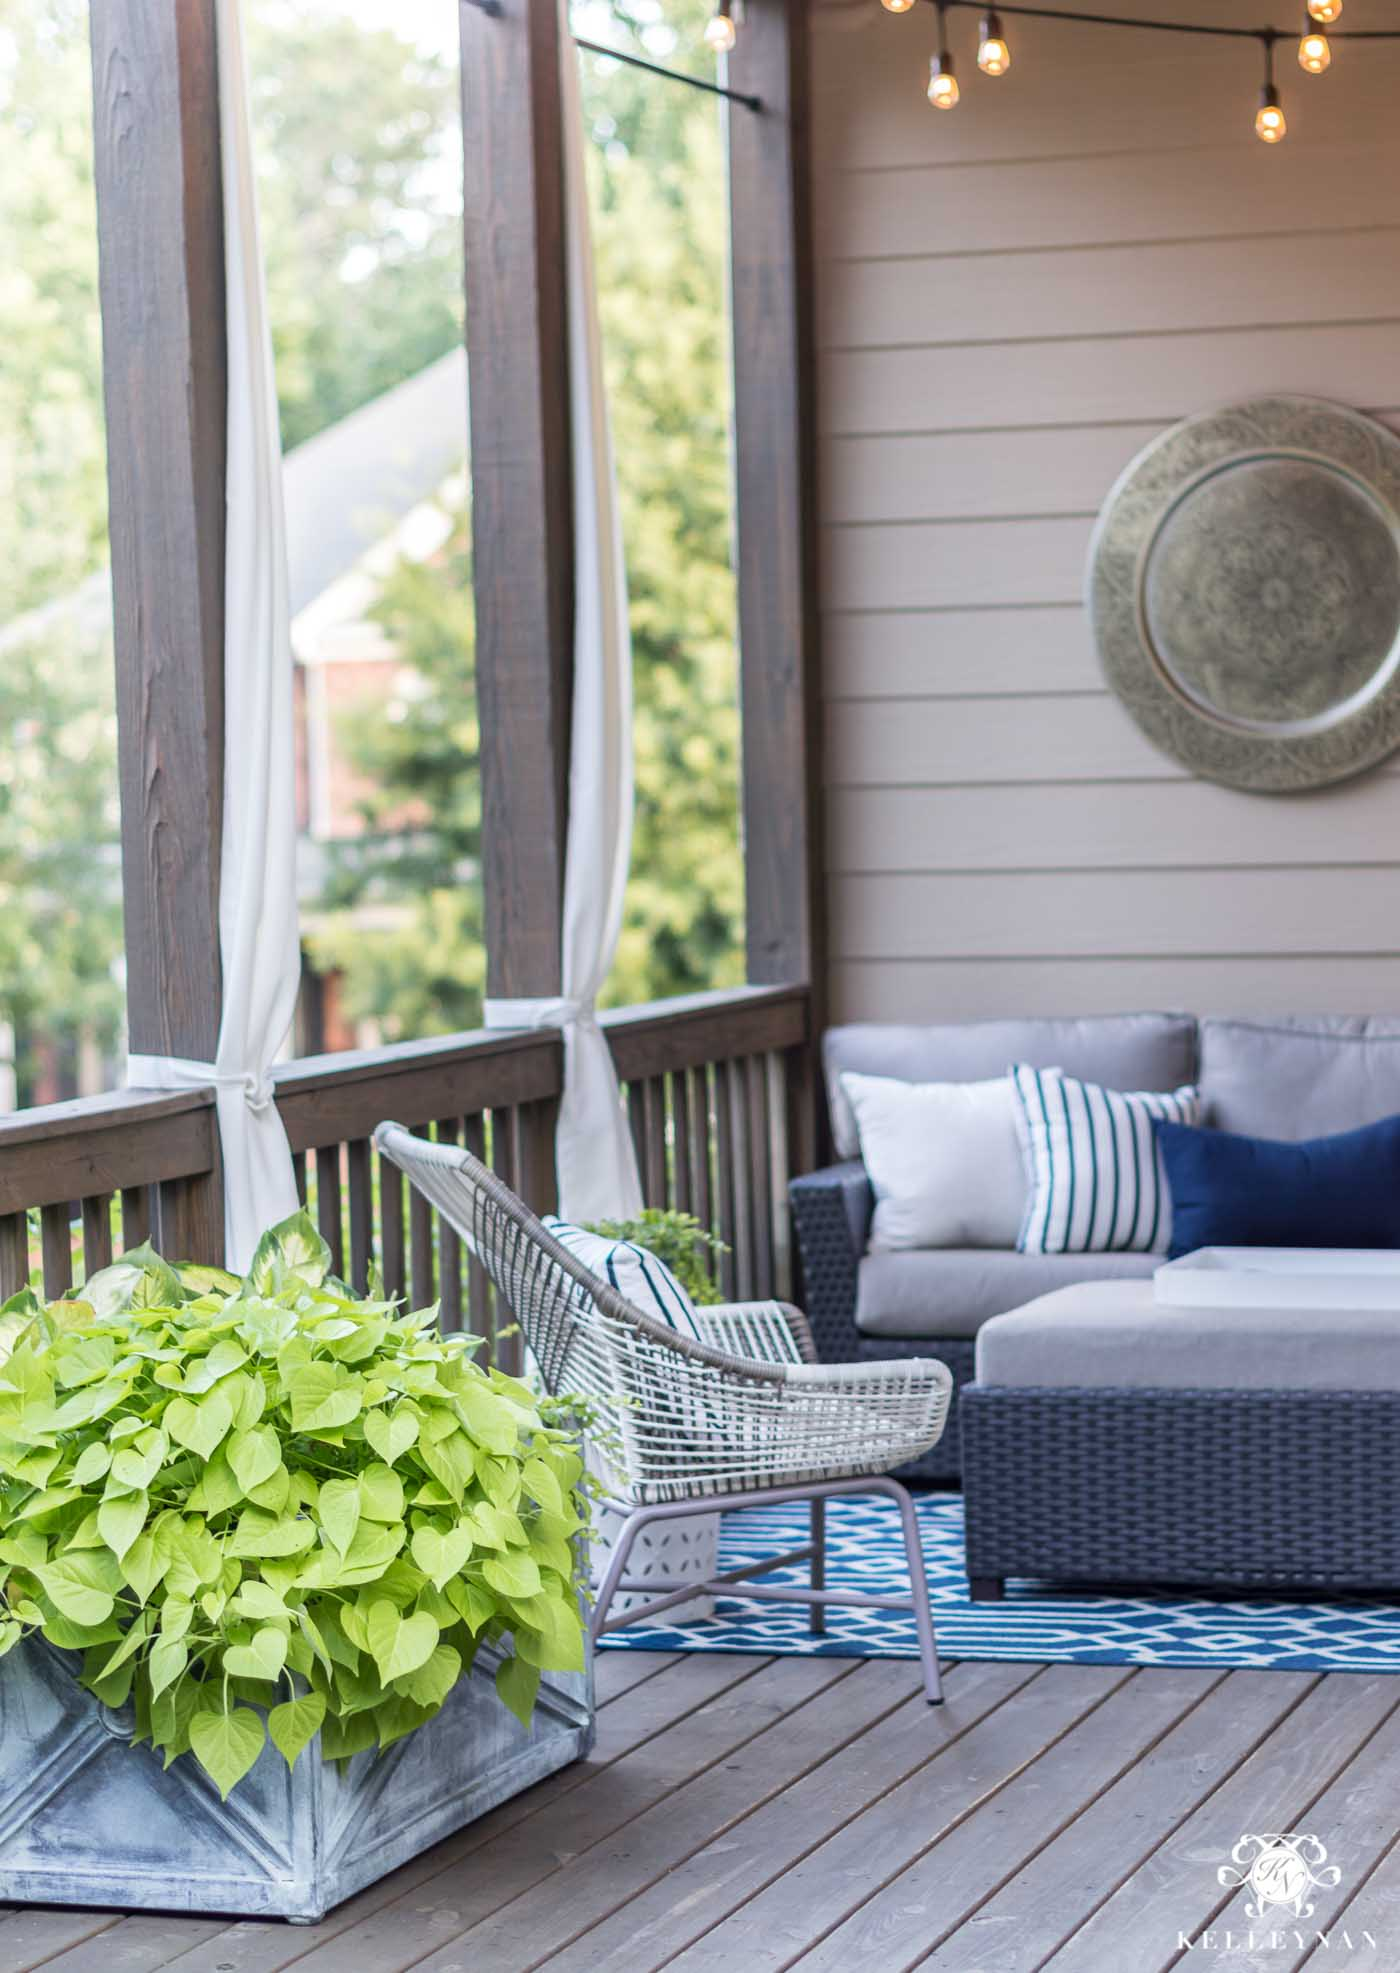 Plants that will thrive on a hot, sunny back deck